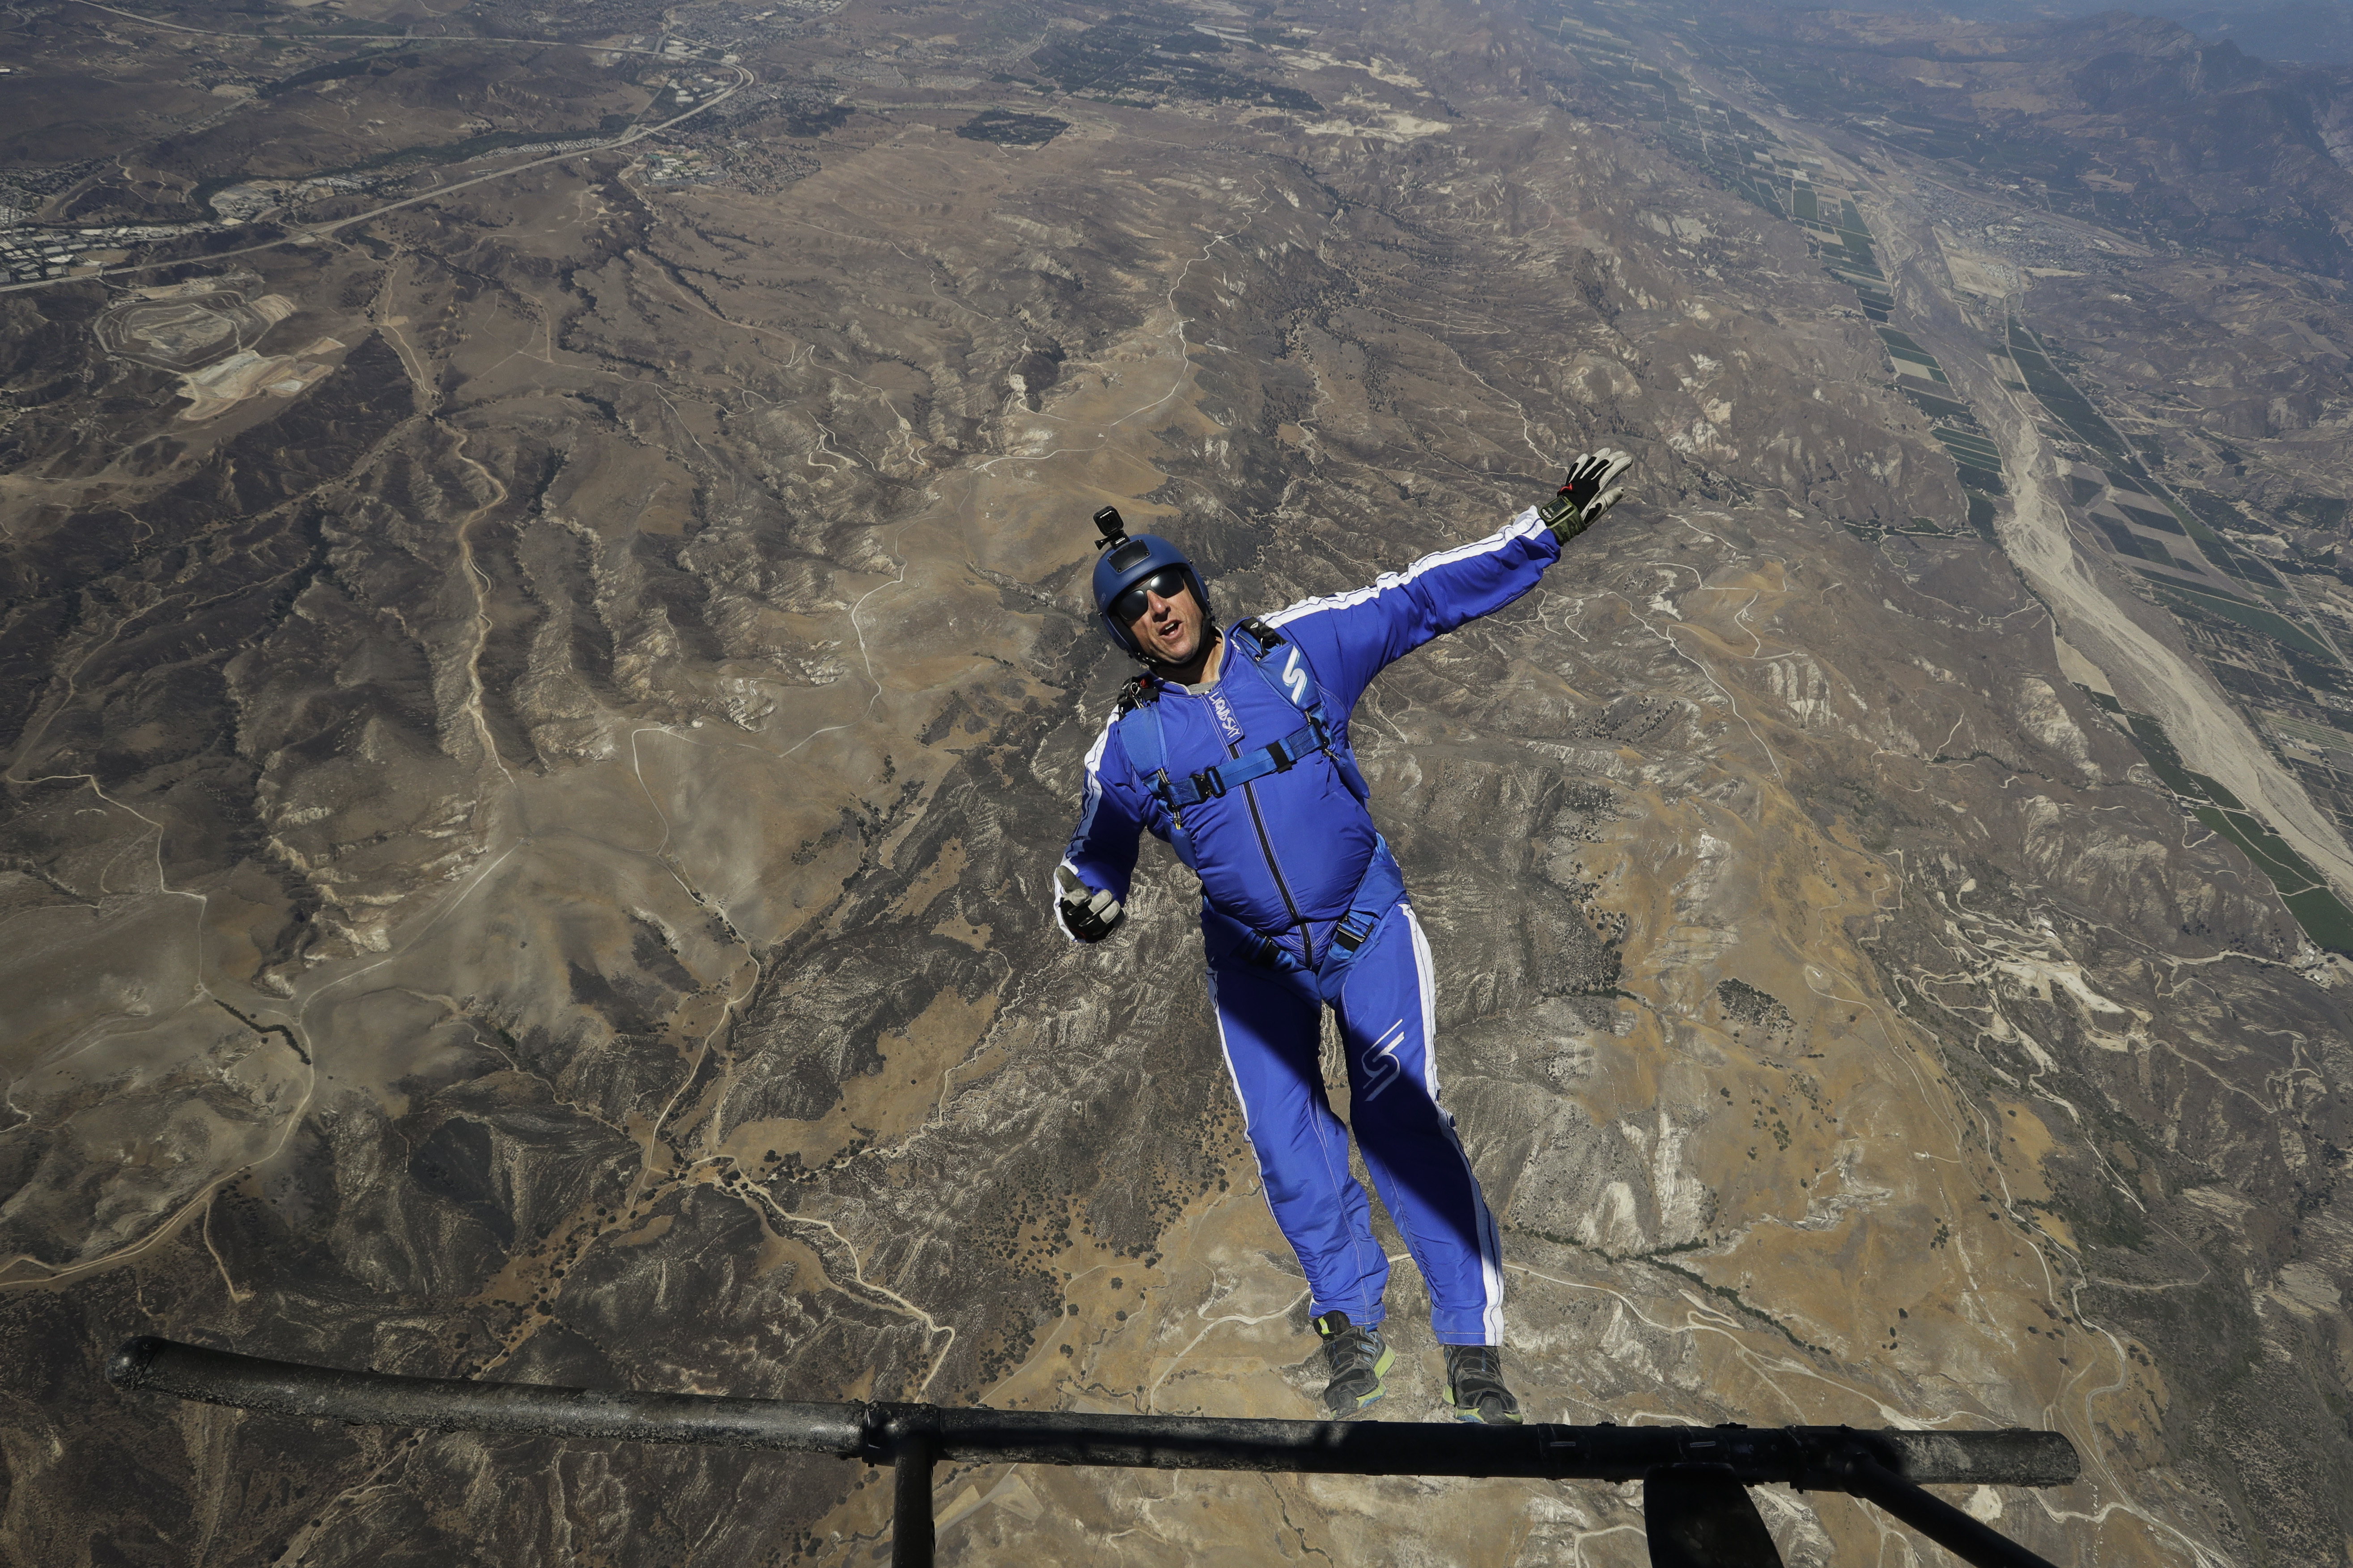 Skydiver Luke Aikins Sets Record For Highest Jump Without Parachute